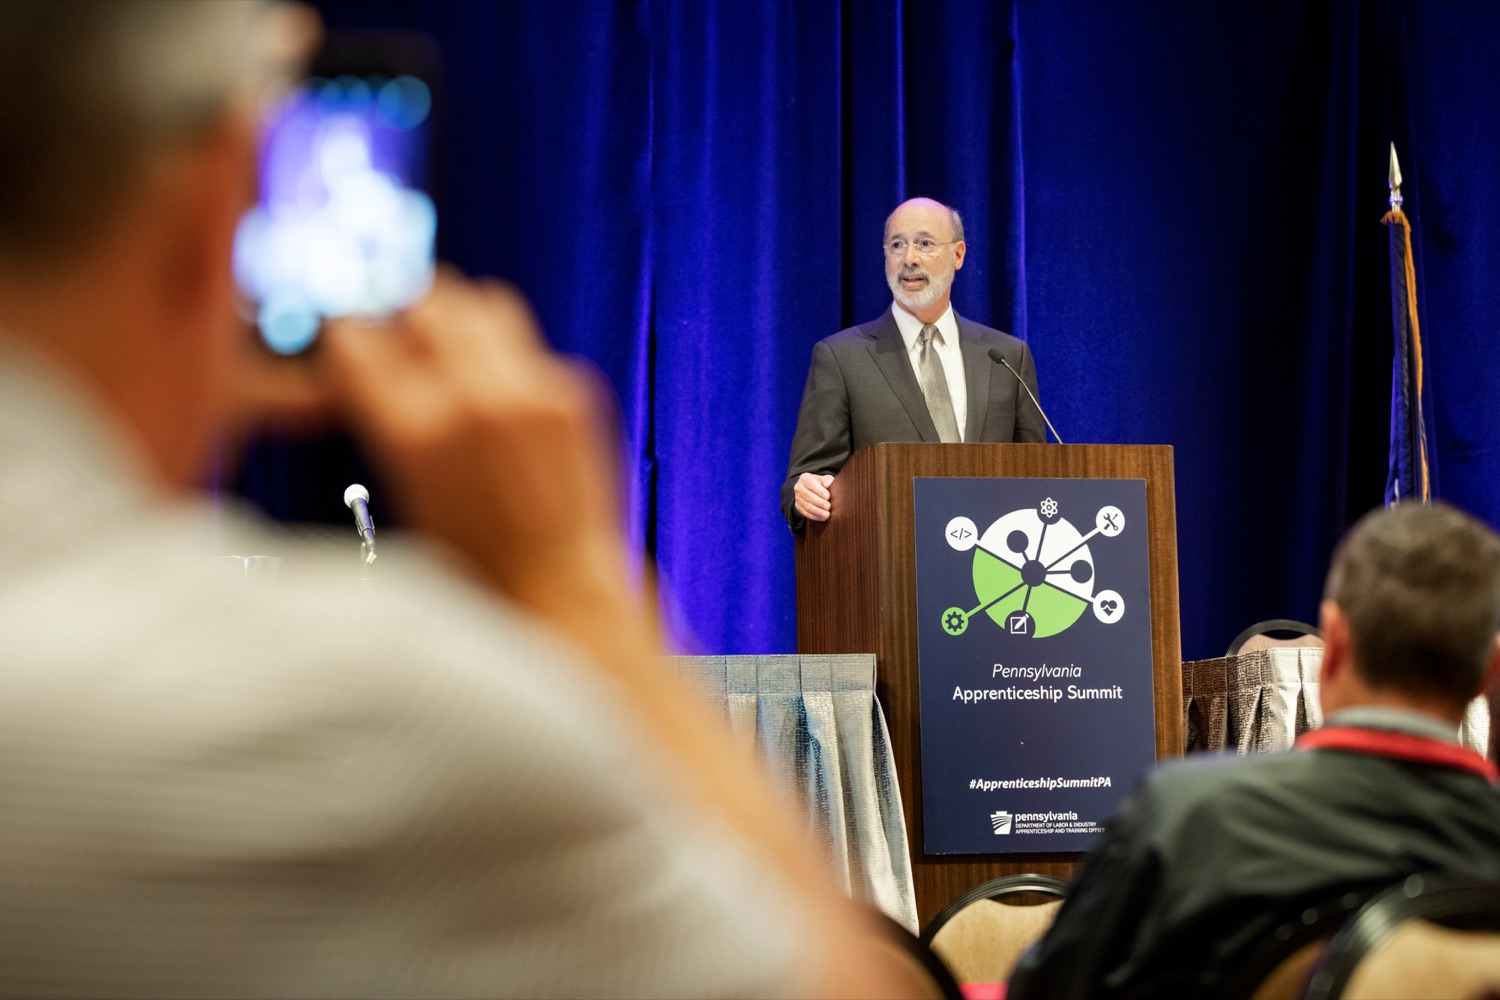 """<a href=""""http://filesource.abacast.com/commonwealthofpa/photo/17520_LandI_Apprenticeships_NK_008.JPG"""" target=""""_blank"""">⇣Download Photo<br></a>Pennsylvania Governor Tom Wolf speaks during the 2019 Pennsylvania Apprenticeship Summit at Hershey Lodge on Thursday, October 31, 2019."""